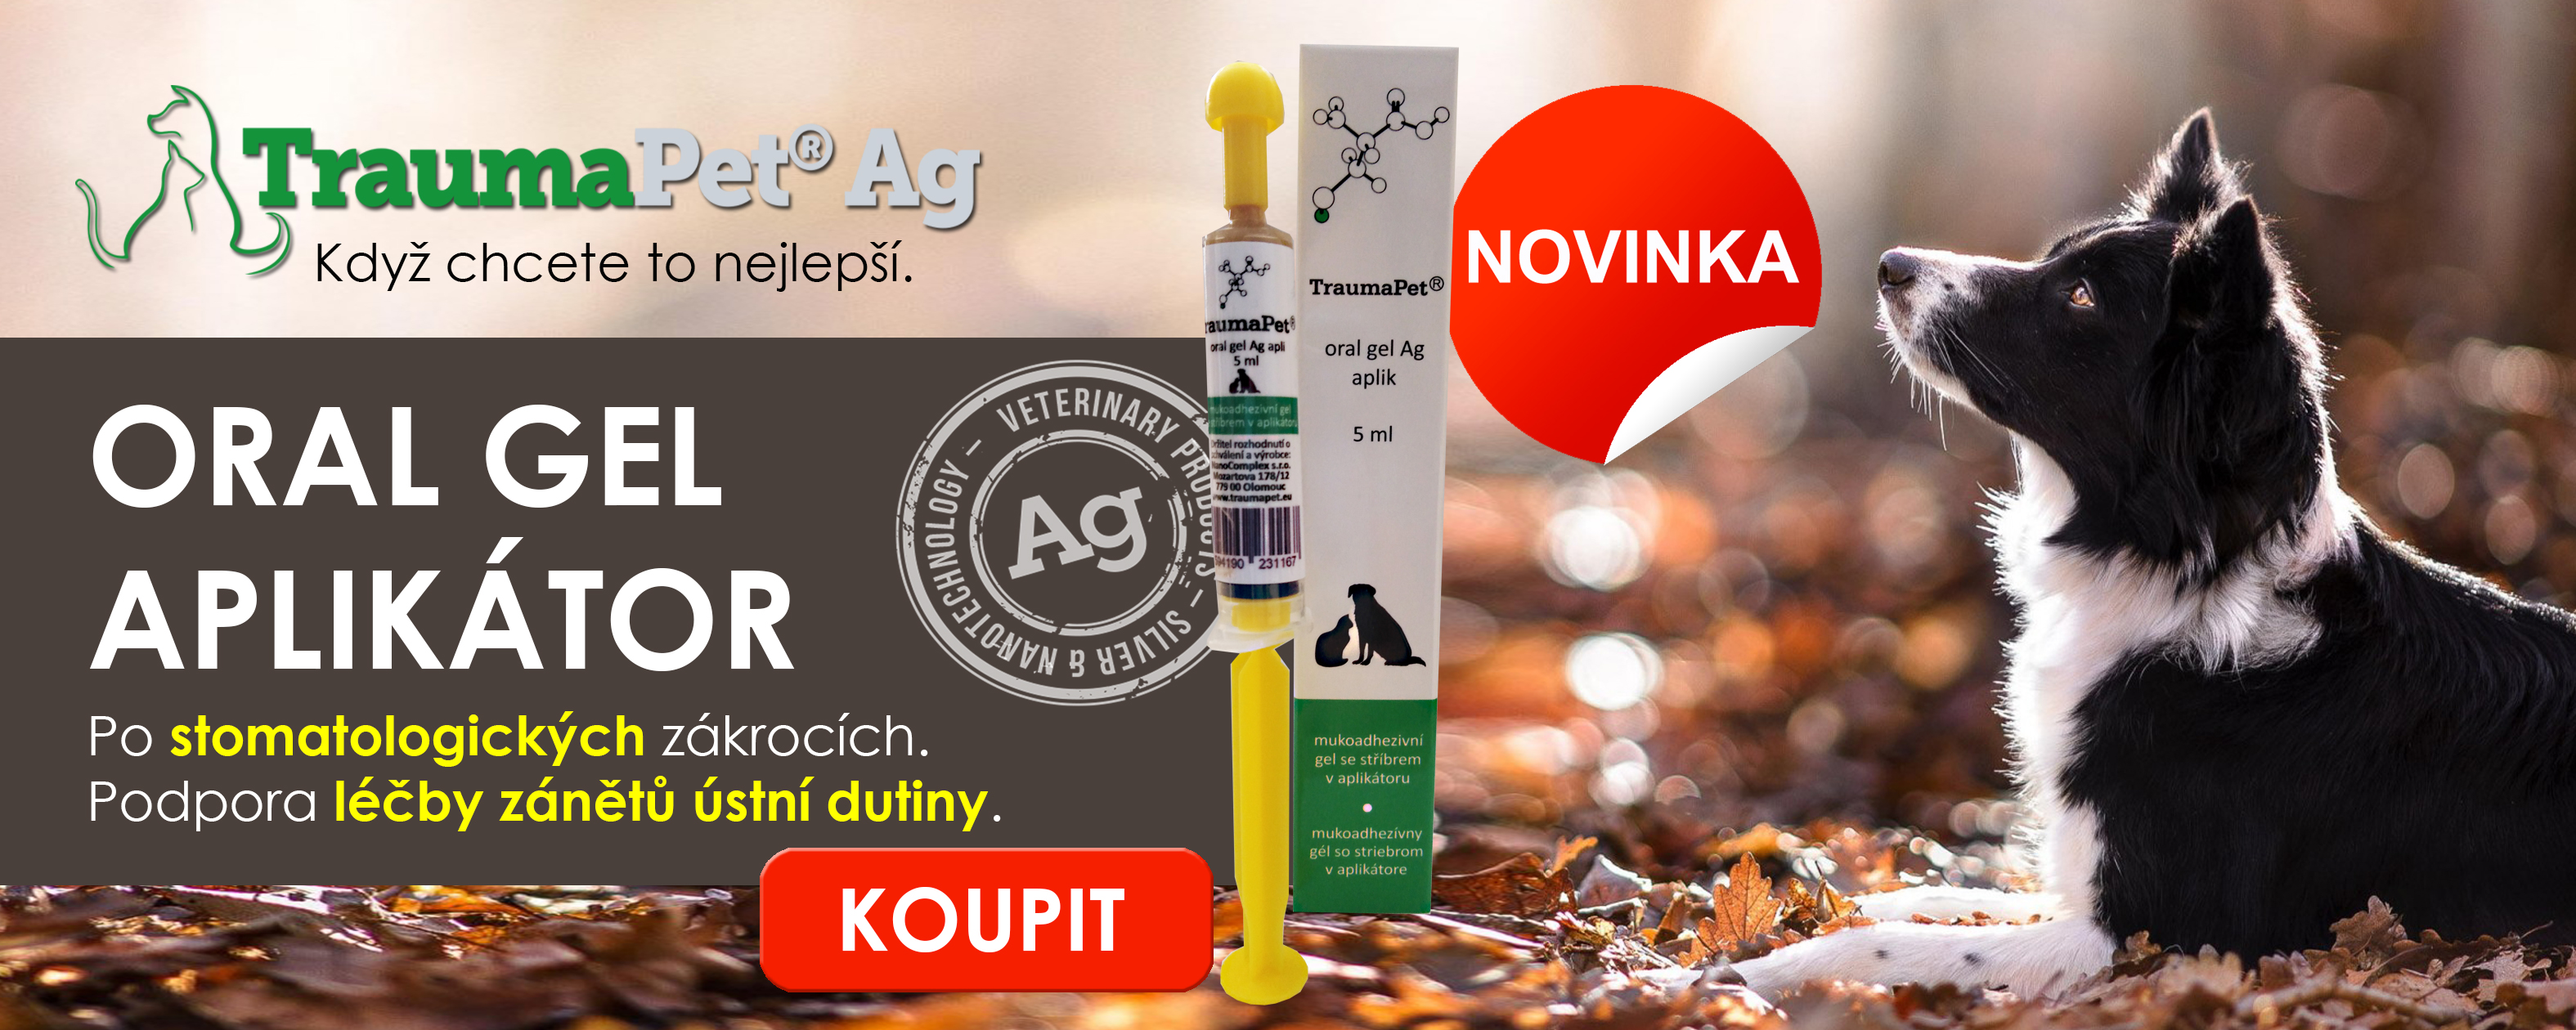 ORAL GEL APLI_1